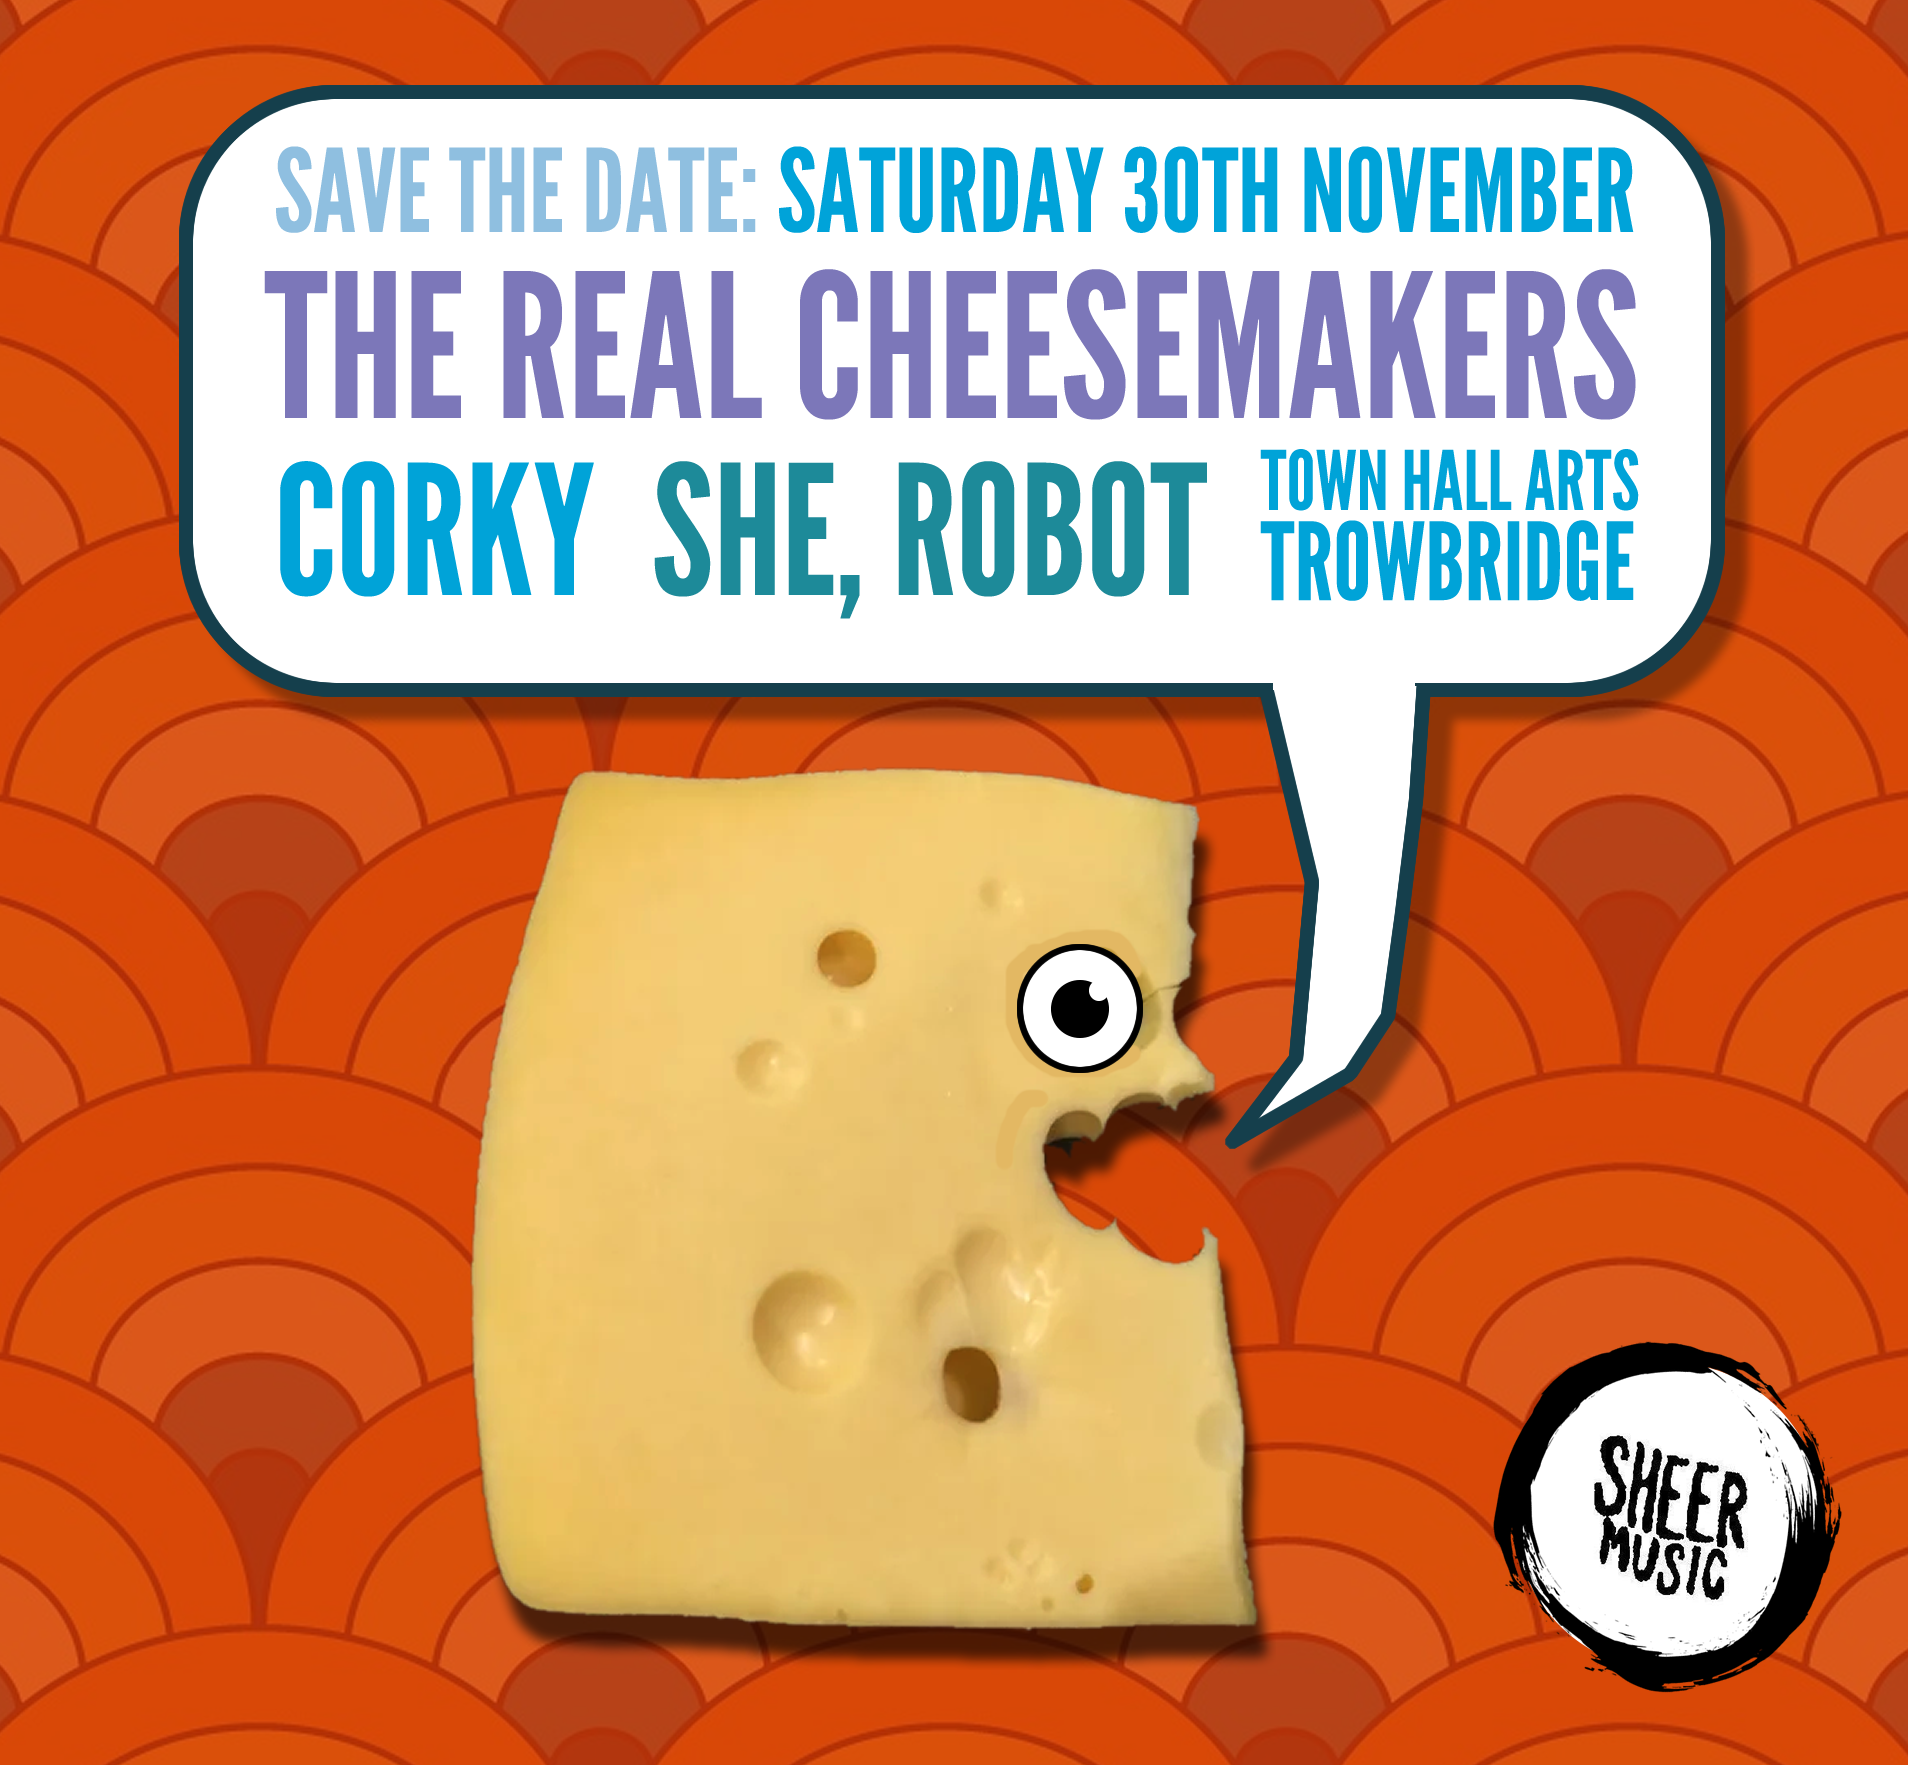 Sheer Music Present... The Real Cheesemakers